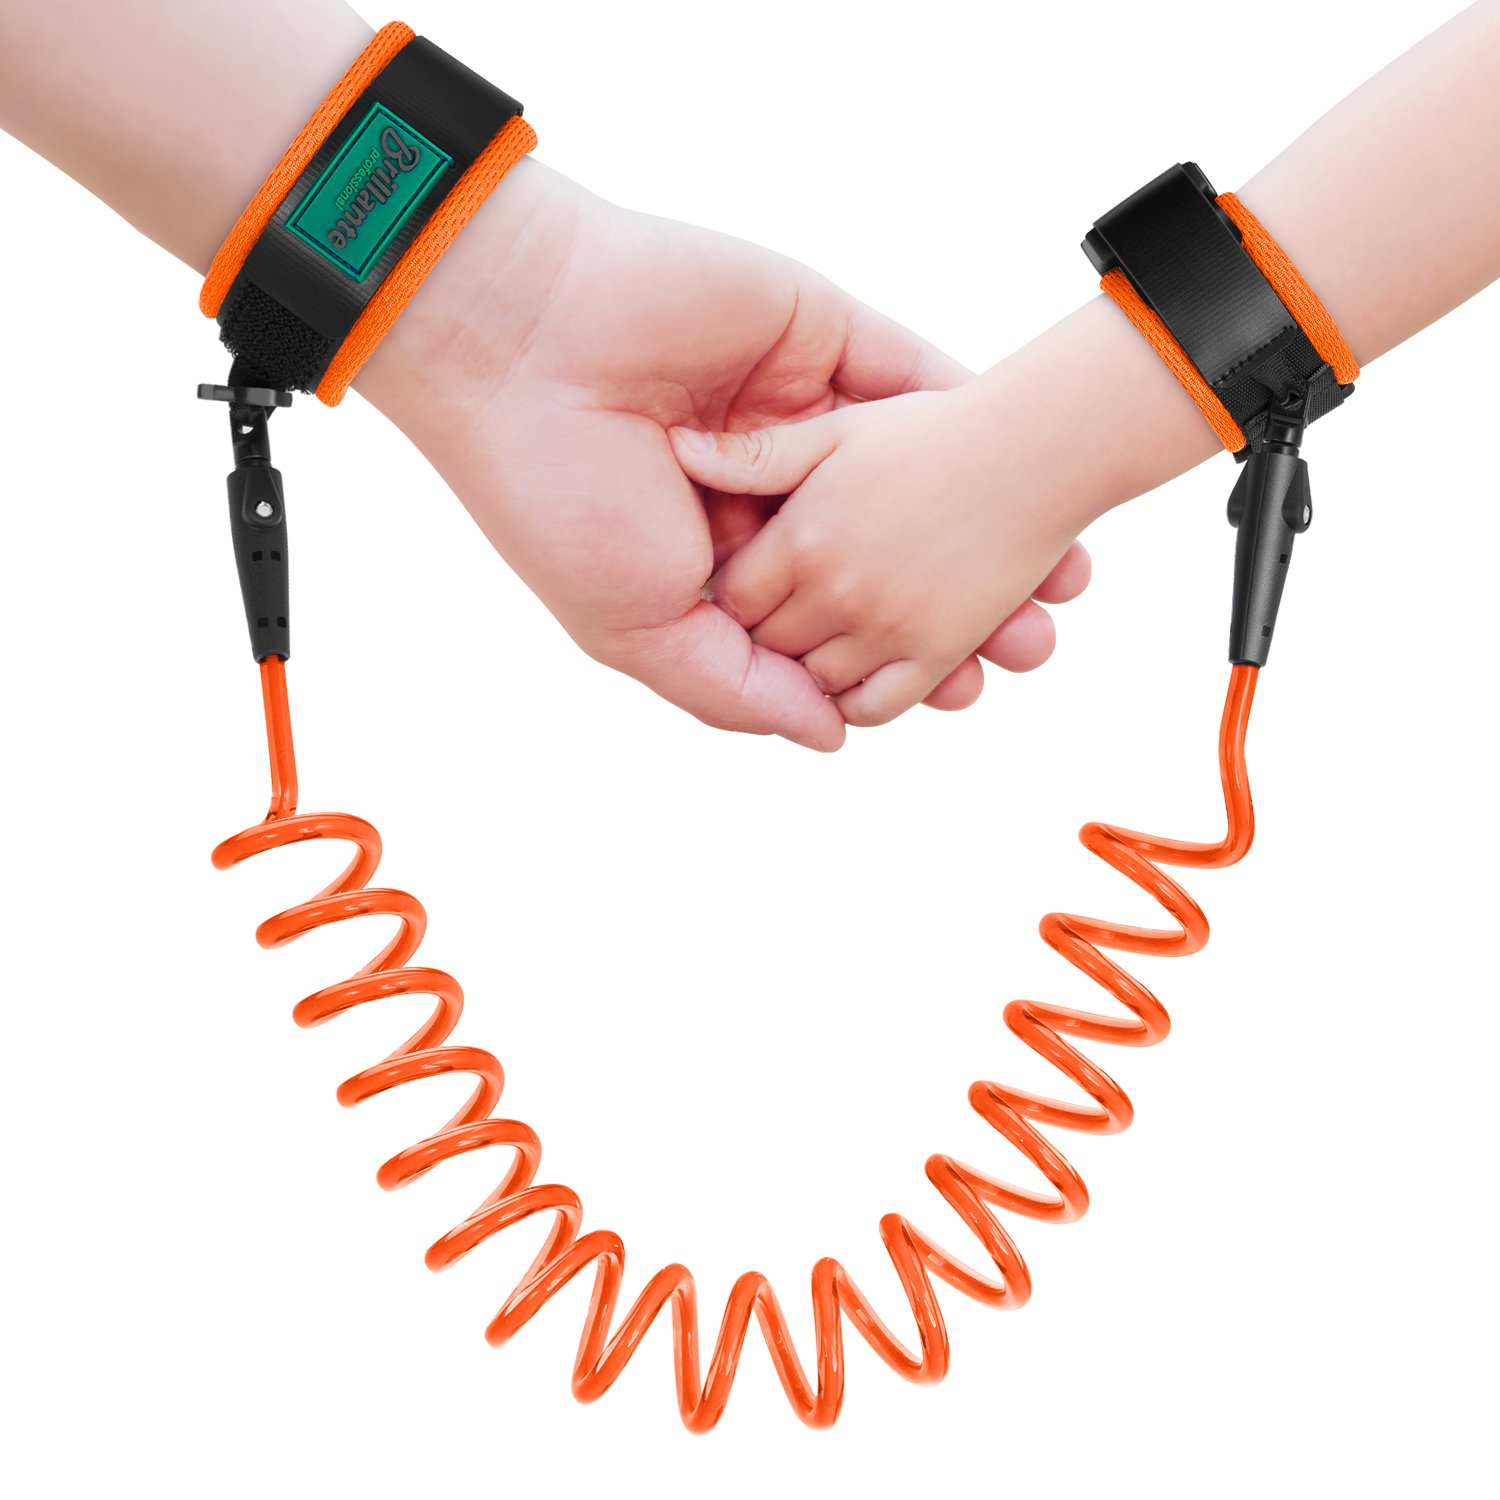 70% off Brillante Anti-Lost Wrist Link , Babies, Kids, 1.5M (Orange)